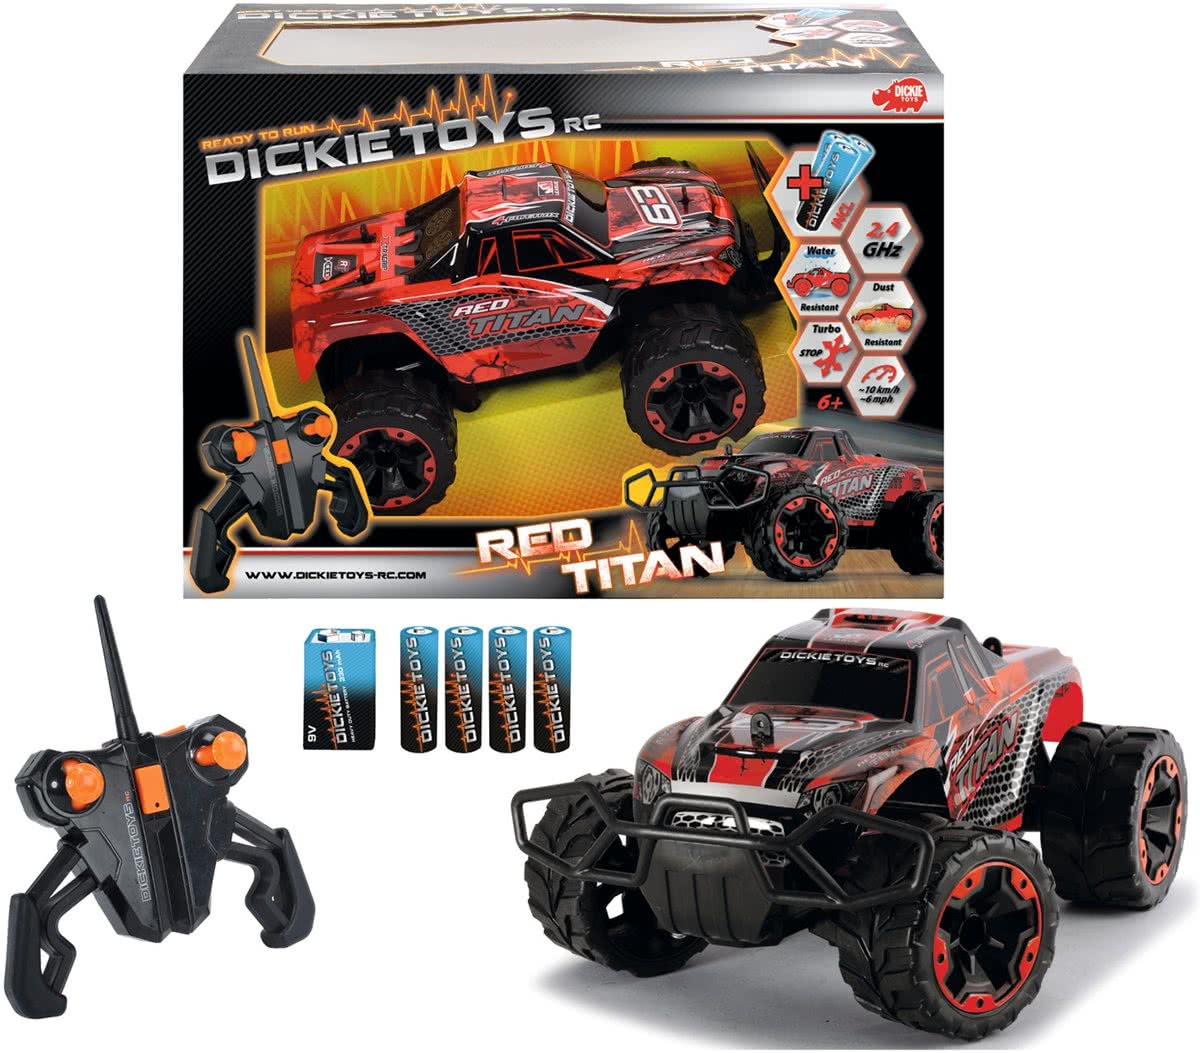 RC Red Titan